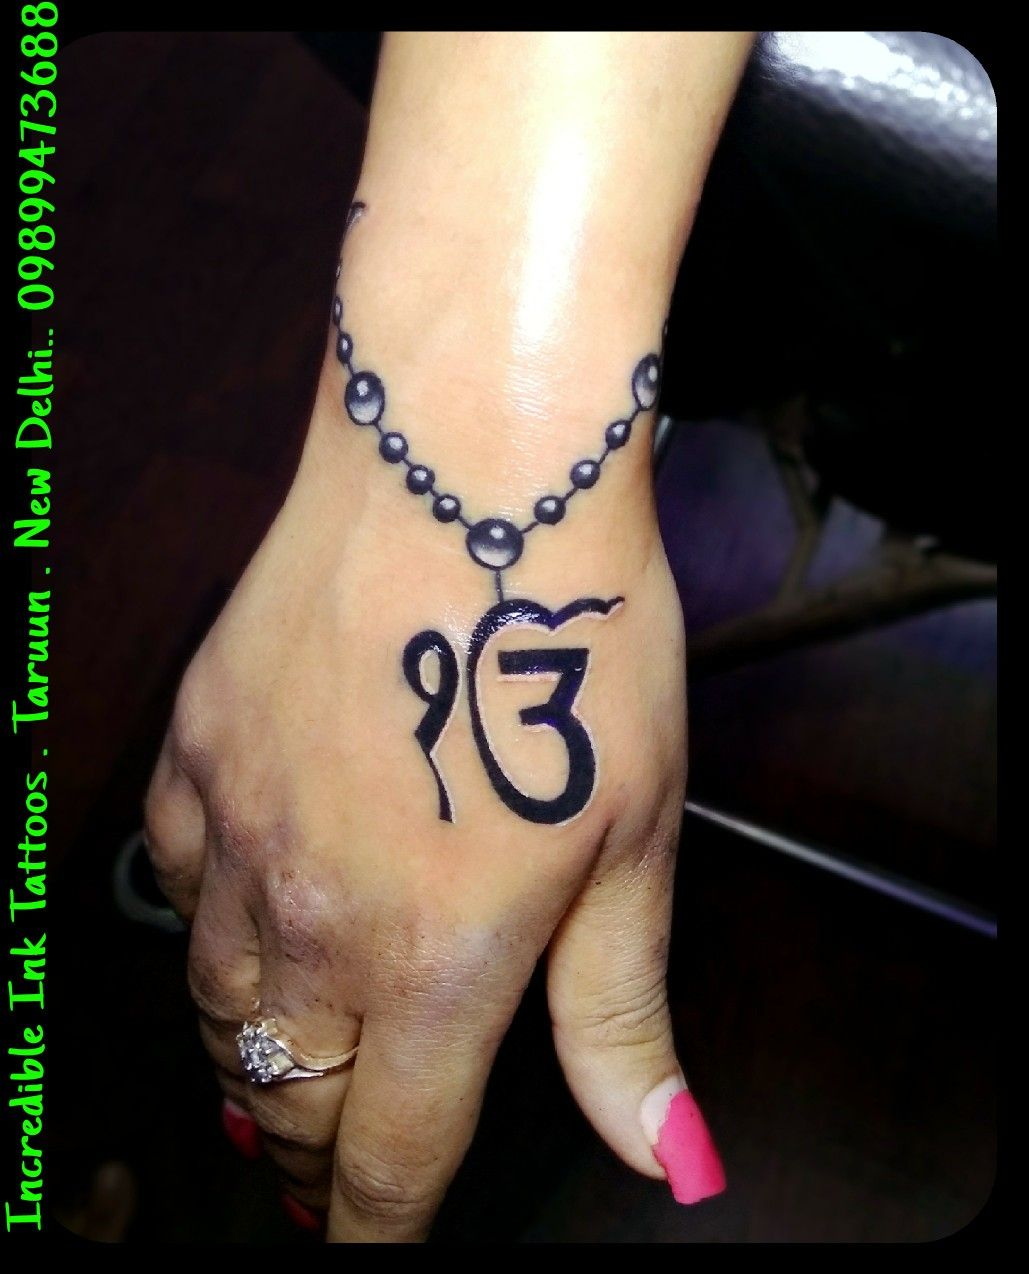 Ikonkar Bracelet 3D Tattoo Ikonkar Bracelet 3D Tattoos Ideas And Designs